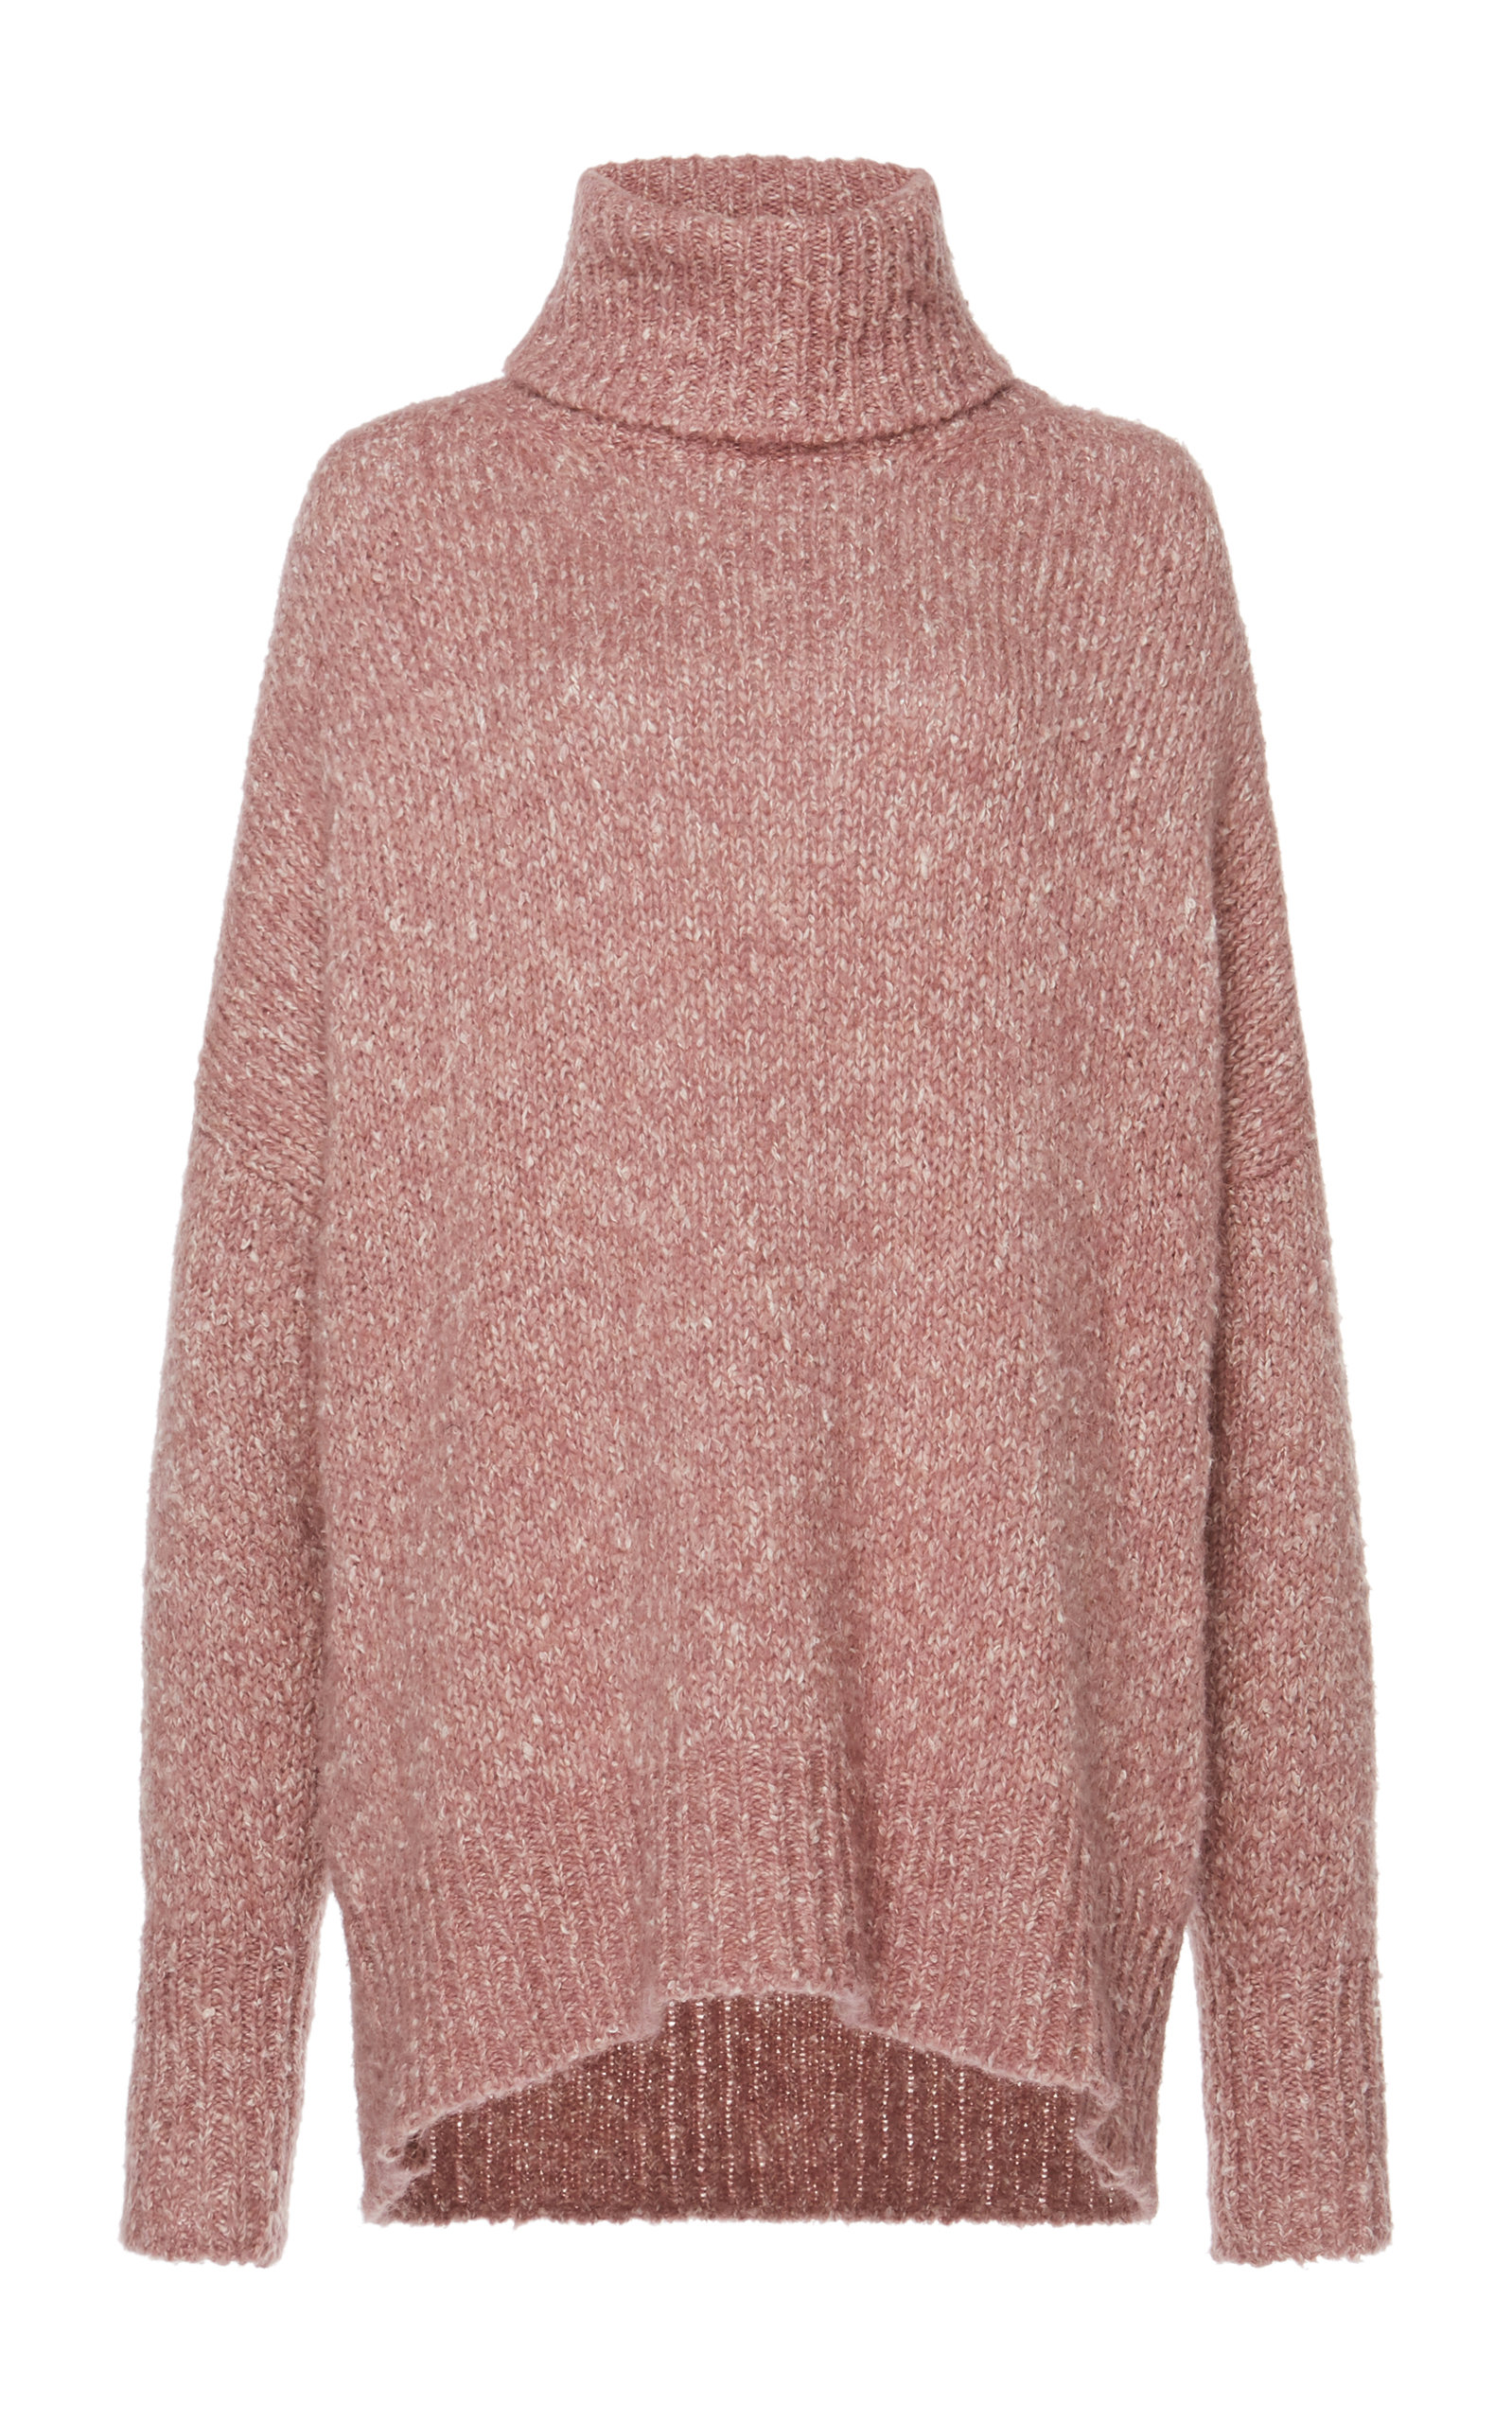 65a35024d29 Shadow Marled Cable-Knit Turtleneck Sweater by Isabel Marant Étoile ...